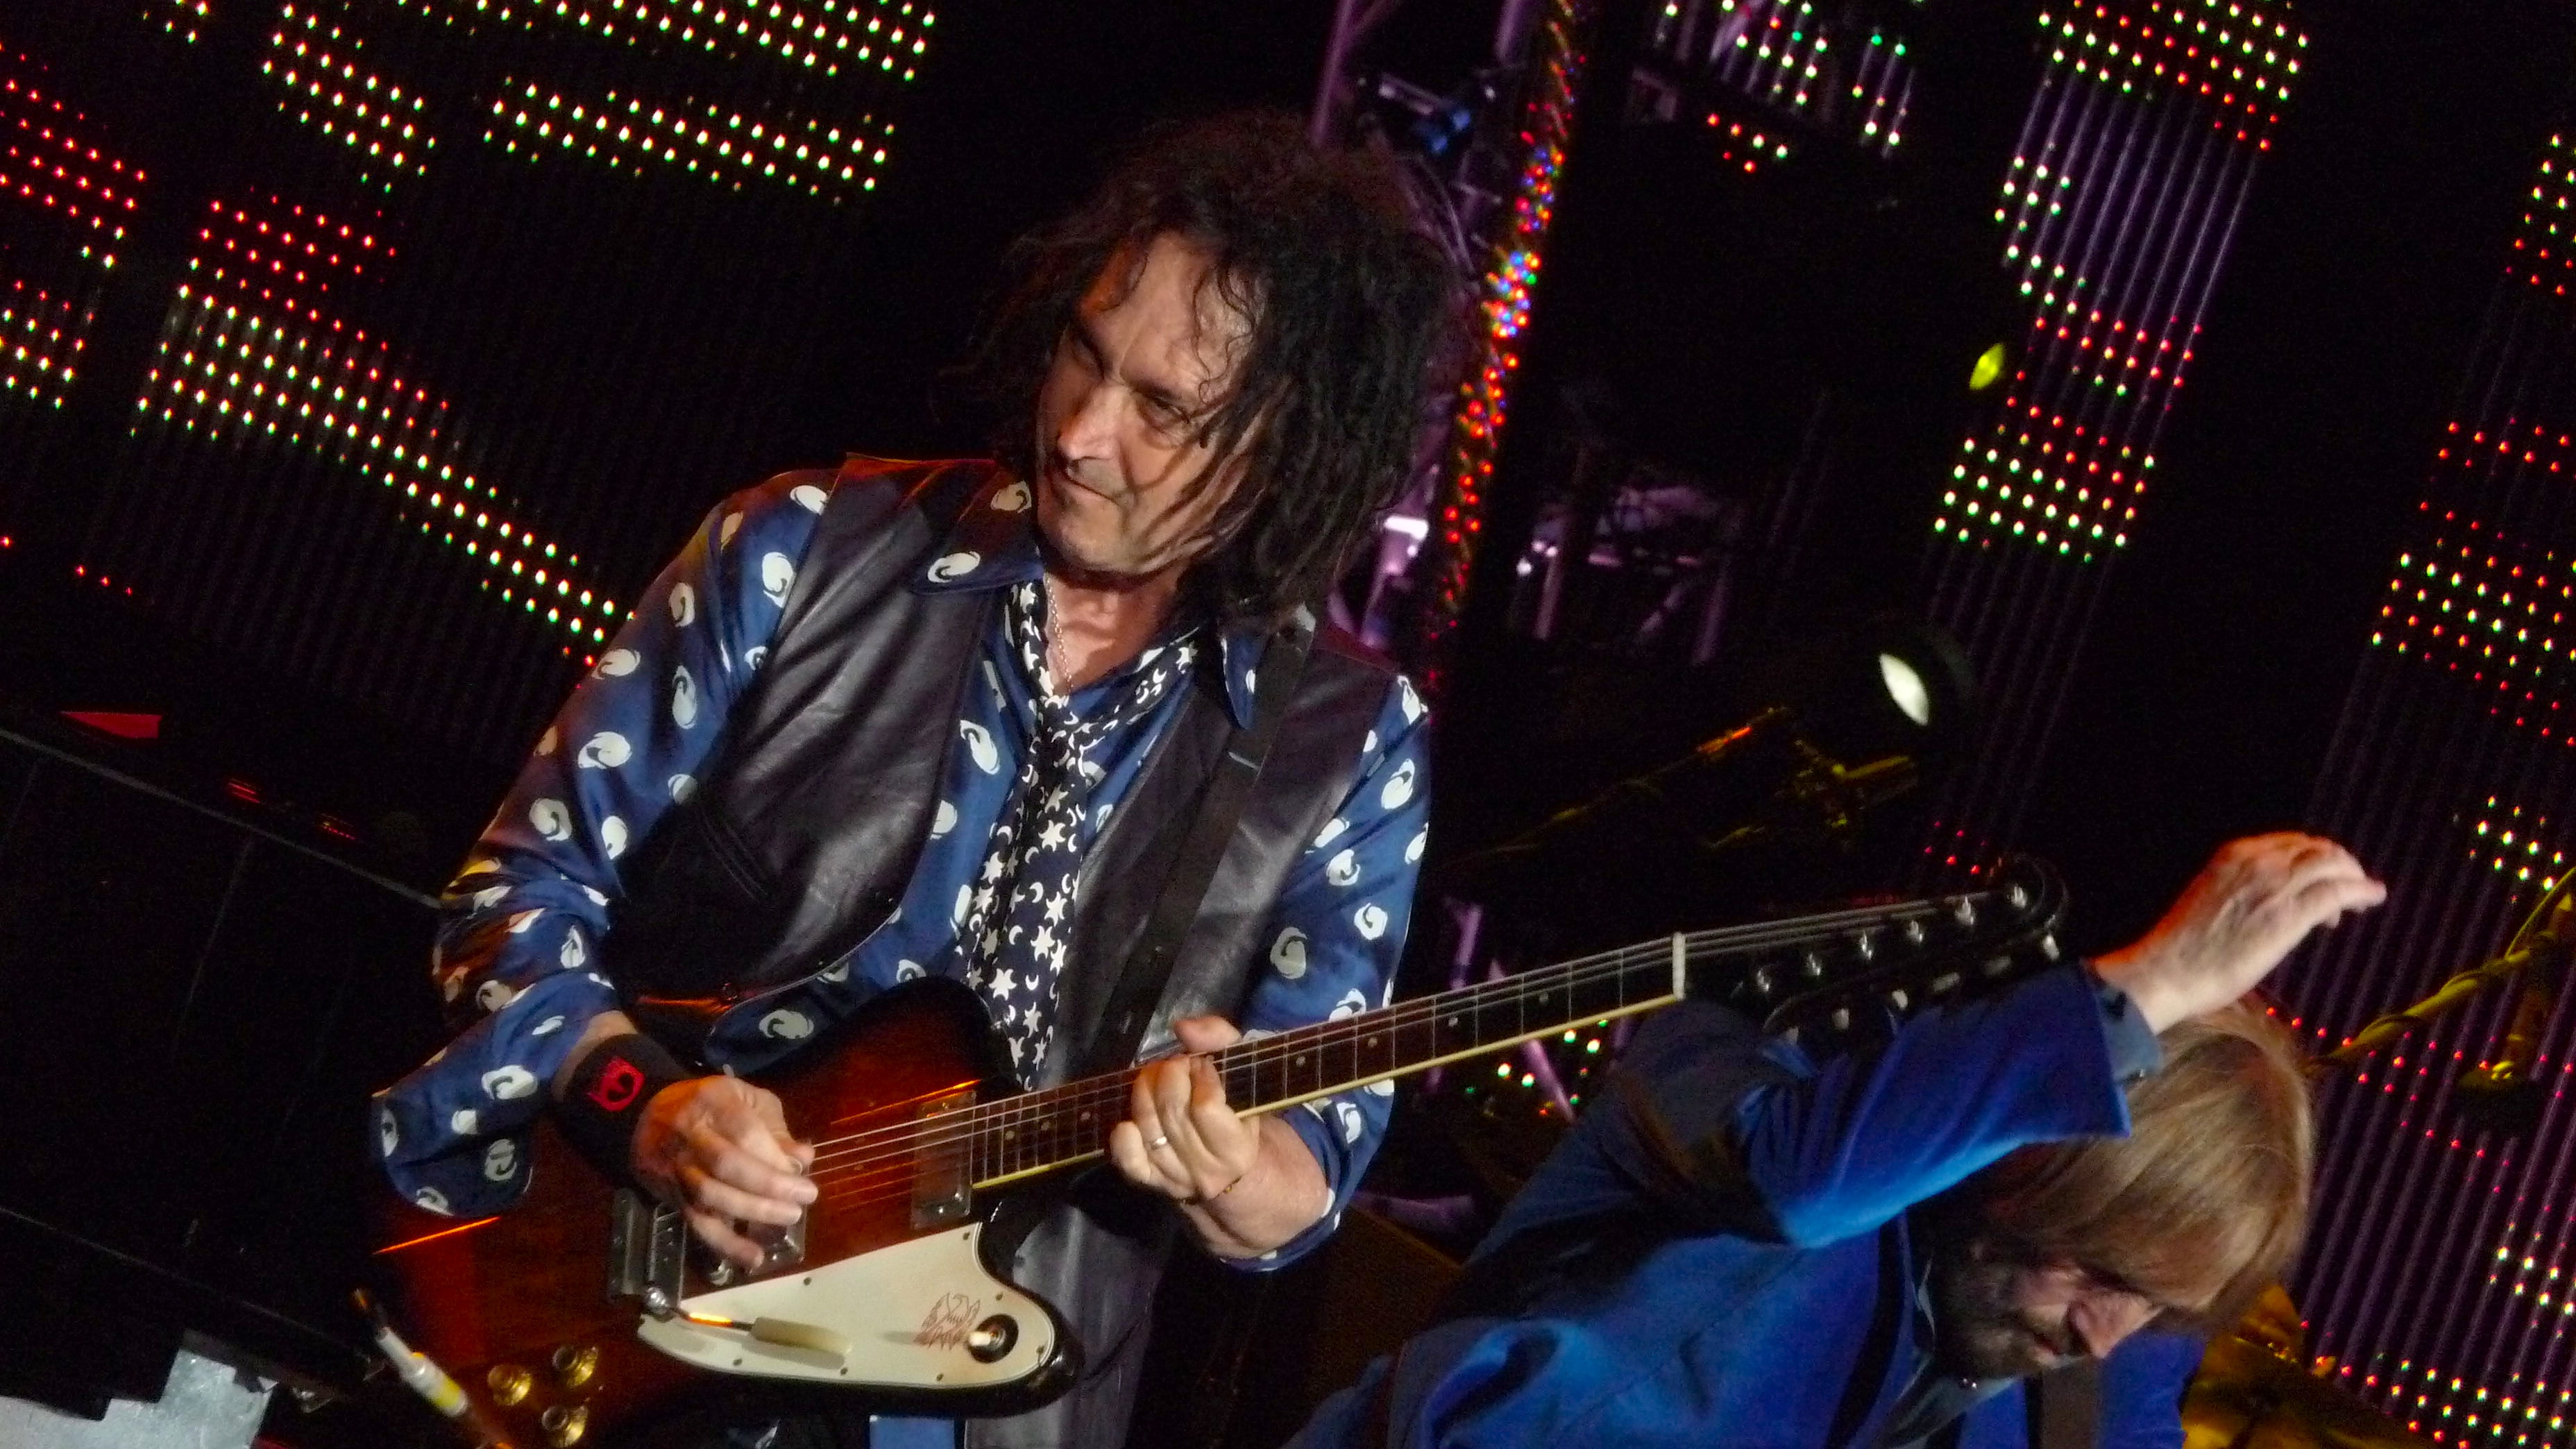 About Mike Campbell Musician Guitarist Musician